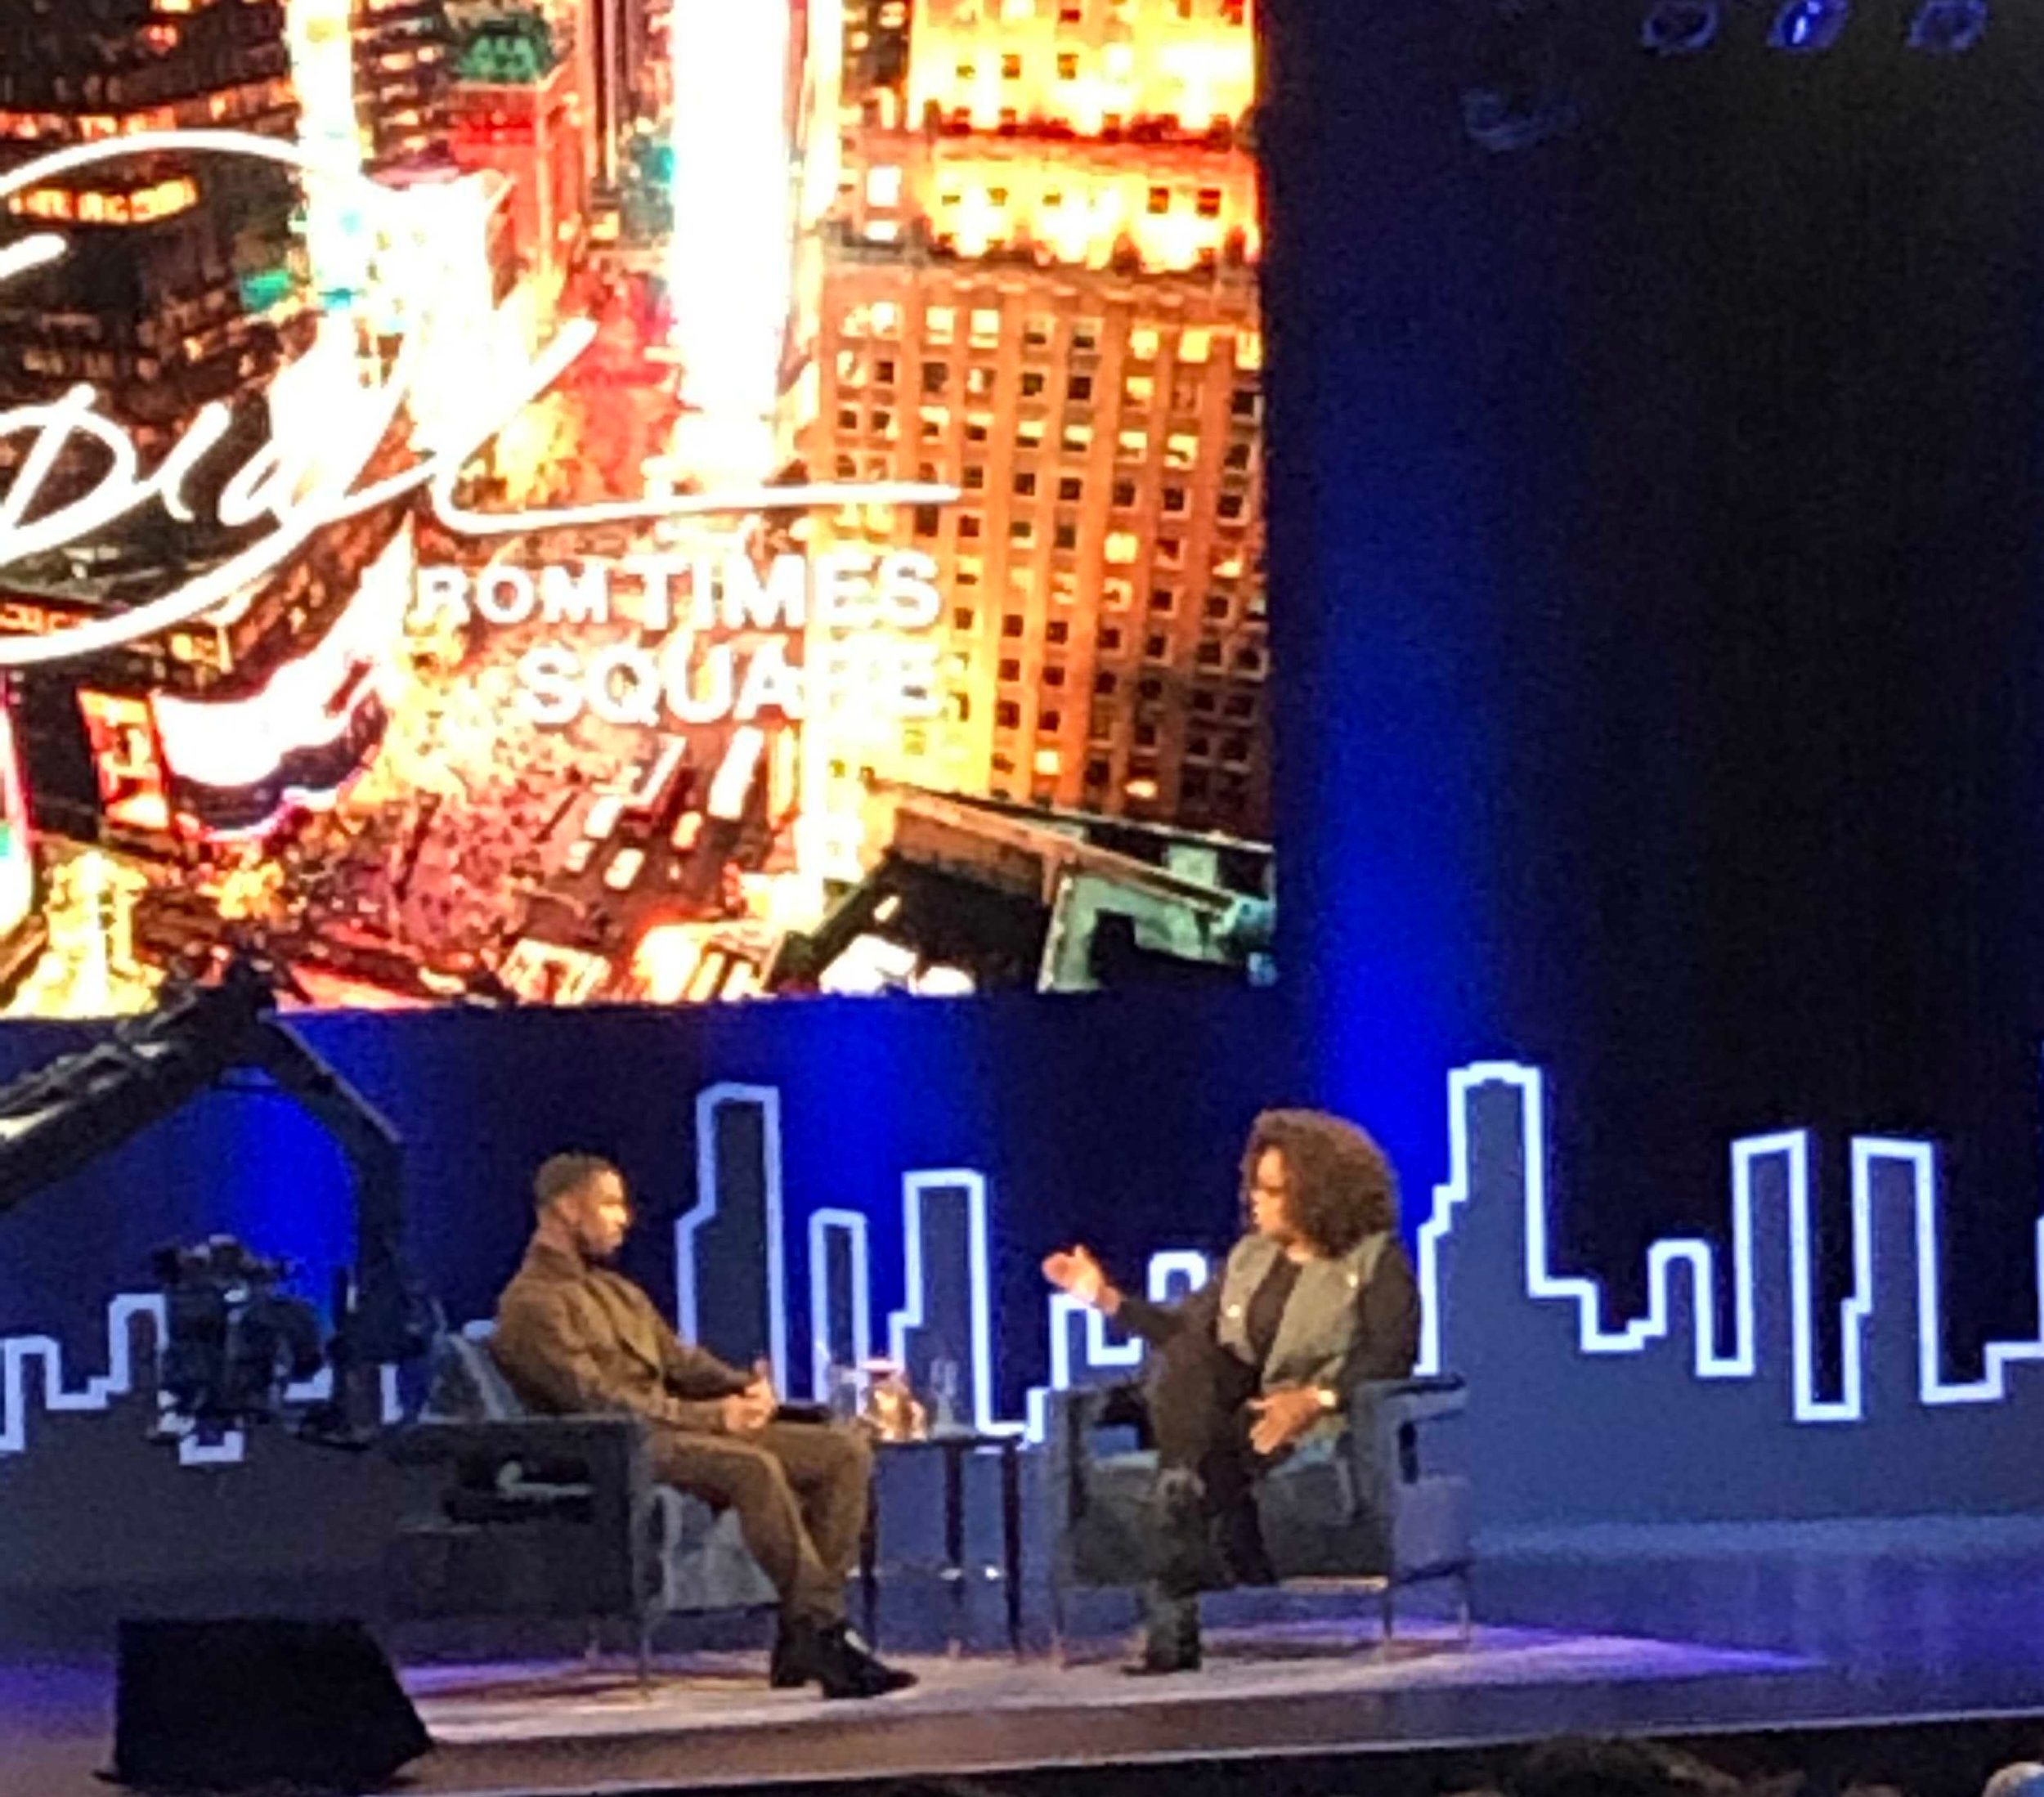 Michael B Jordan being interviewed by Oprah in Times Square for Supersoul Conversations on Tuesday February 5, 2019.